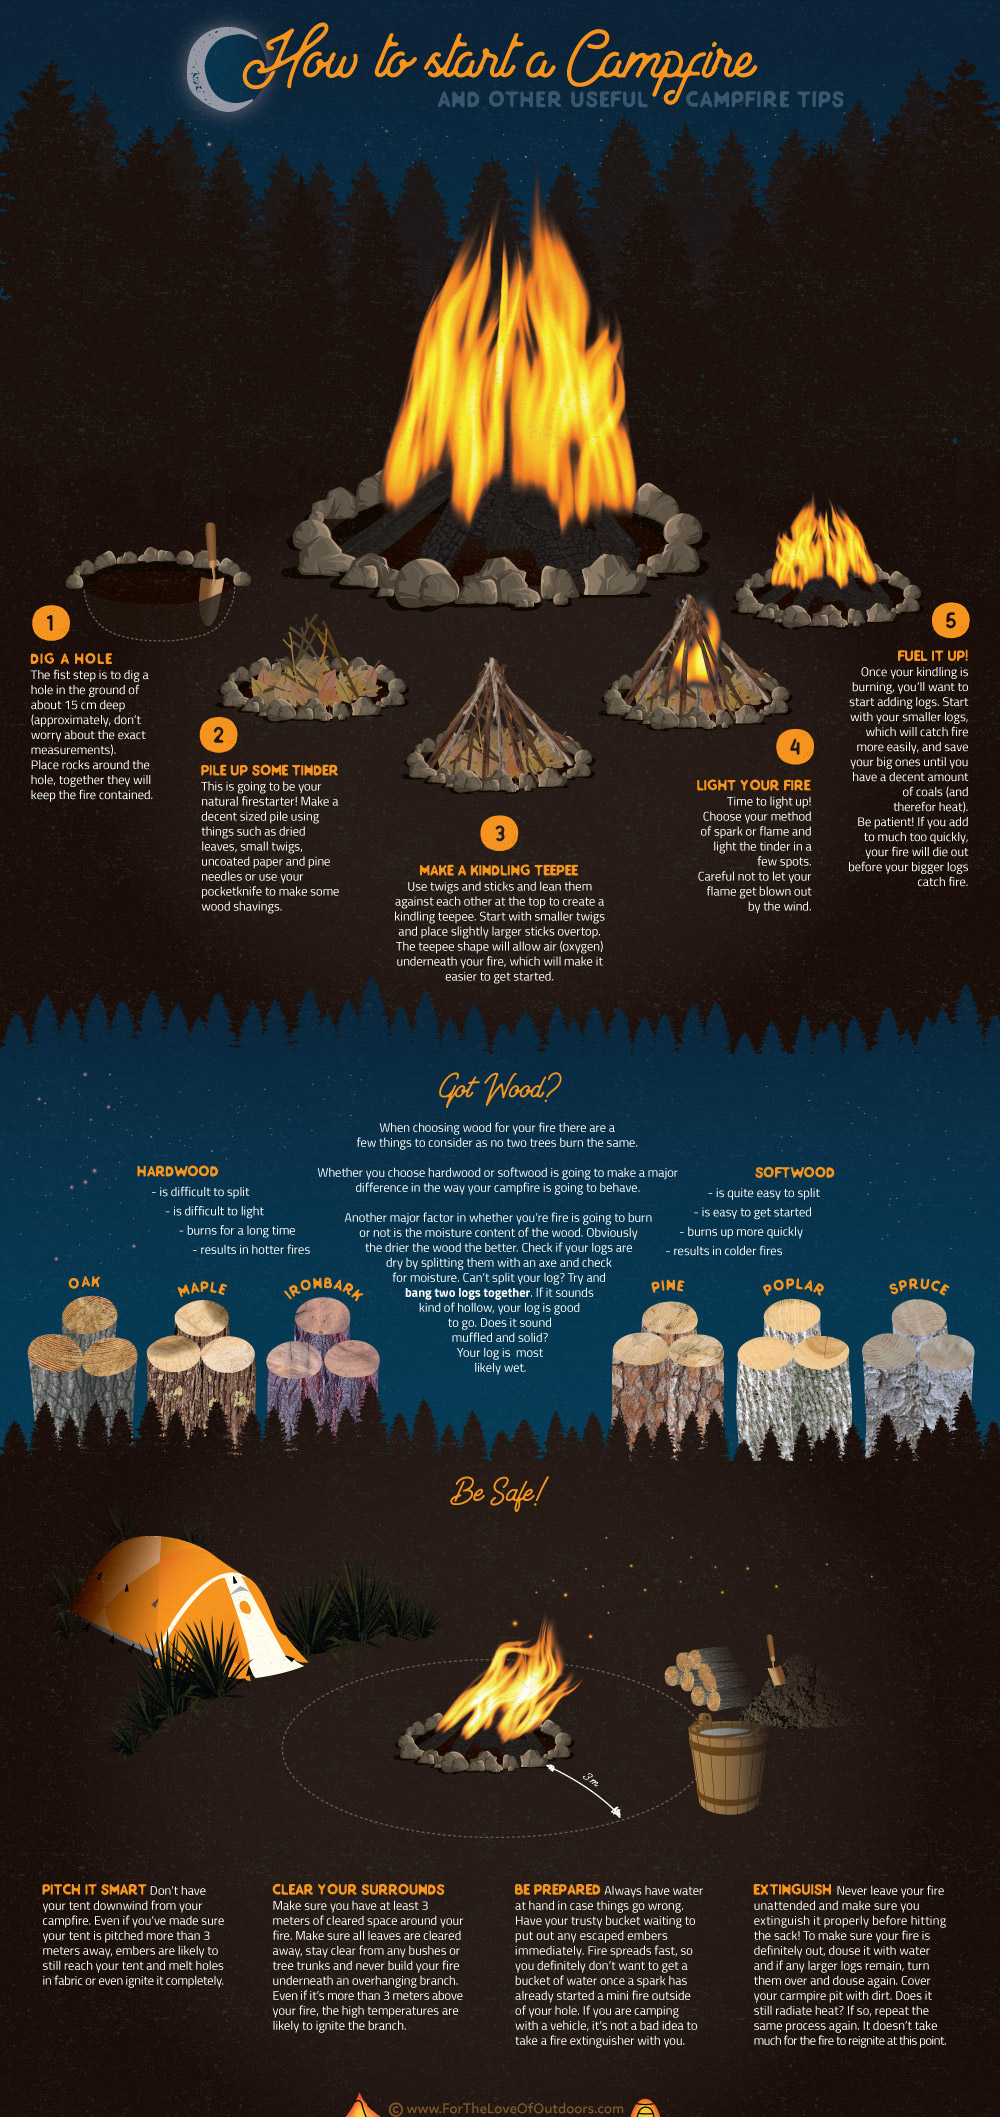 How to start a Campfire - an infographic How To guide